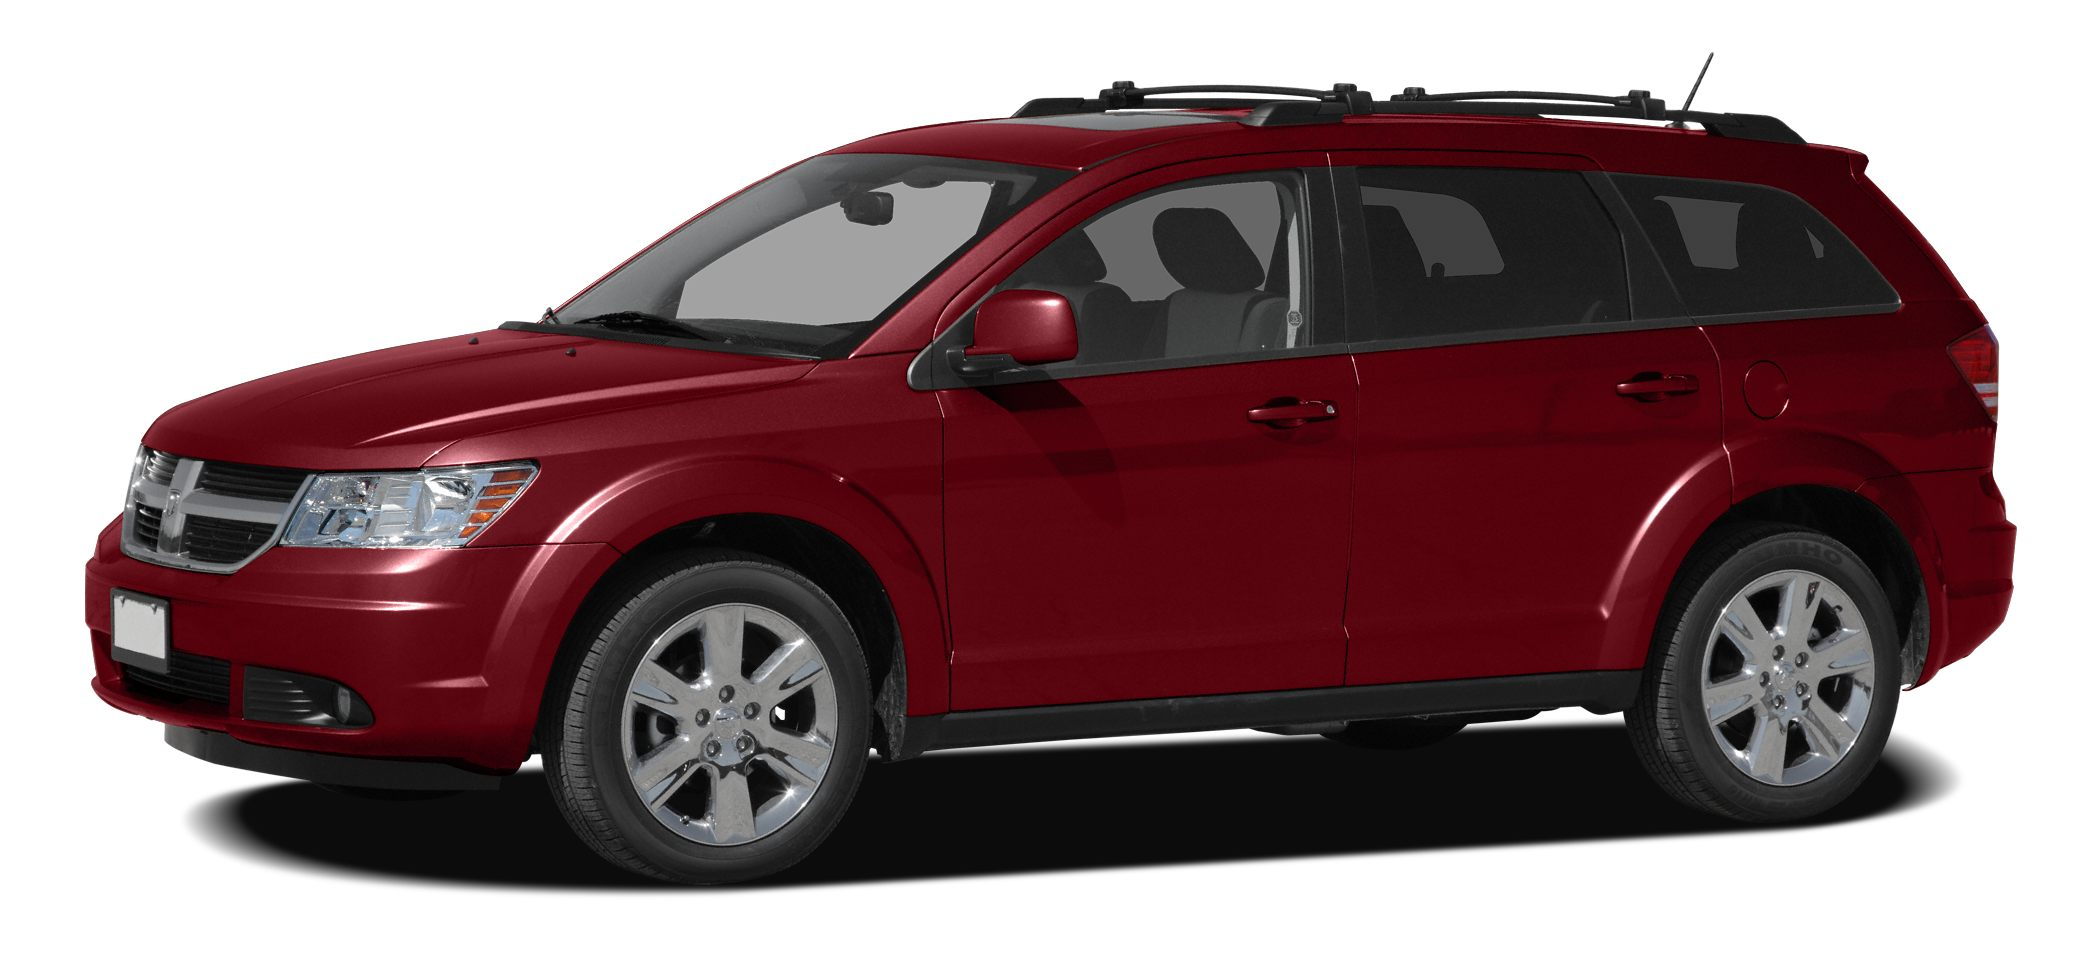 2010 Dodge Journey SXT DISCLAIMER We are excited to offer this vehicle to you but it is currently